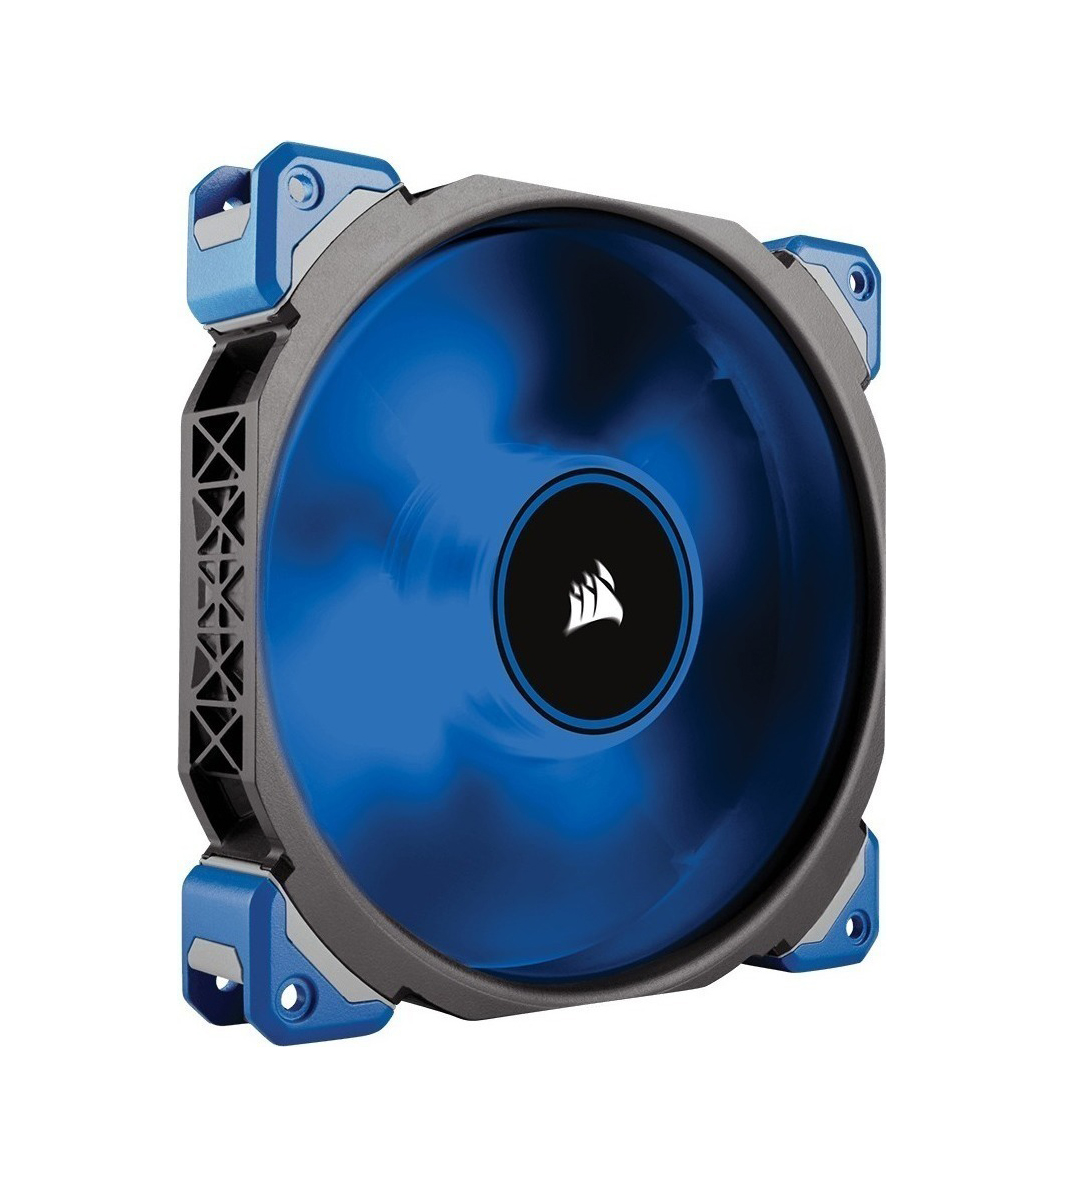 Corsair Ml140 Pro Led Blue 140mm CO-9050048-WW